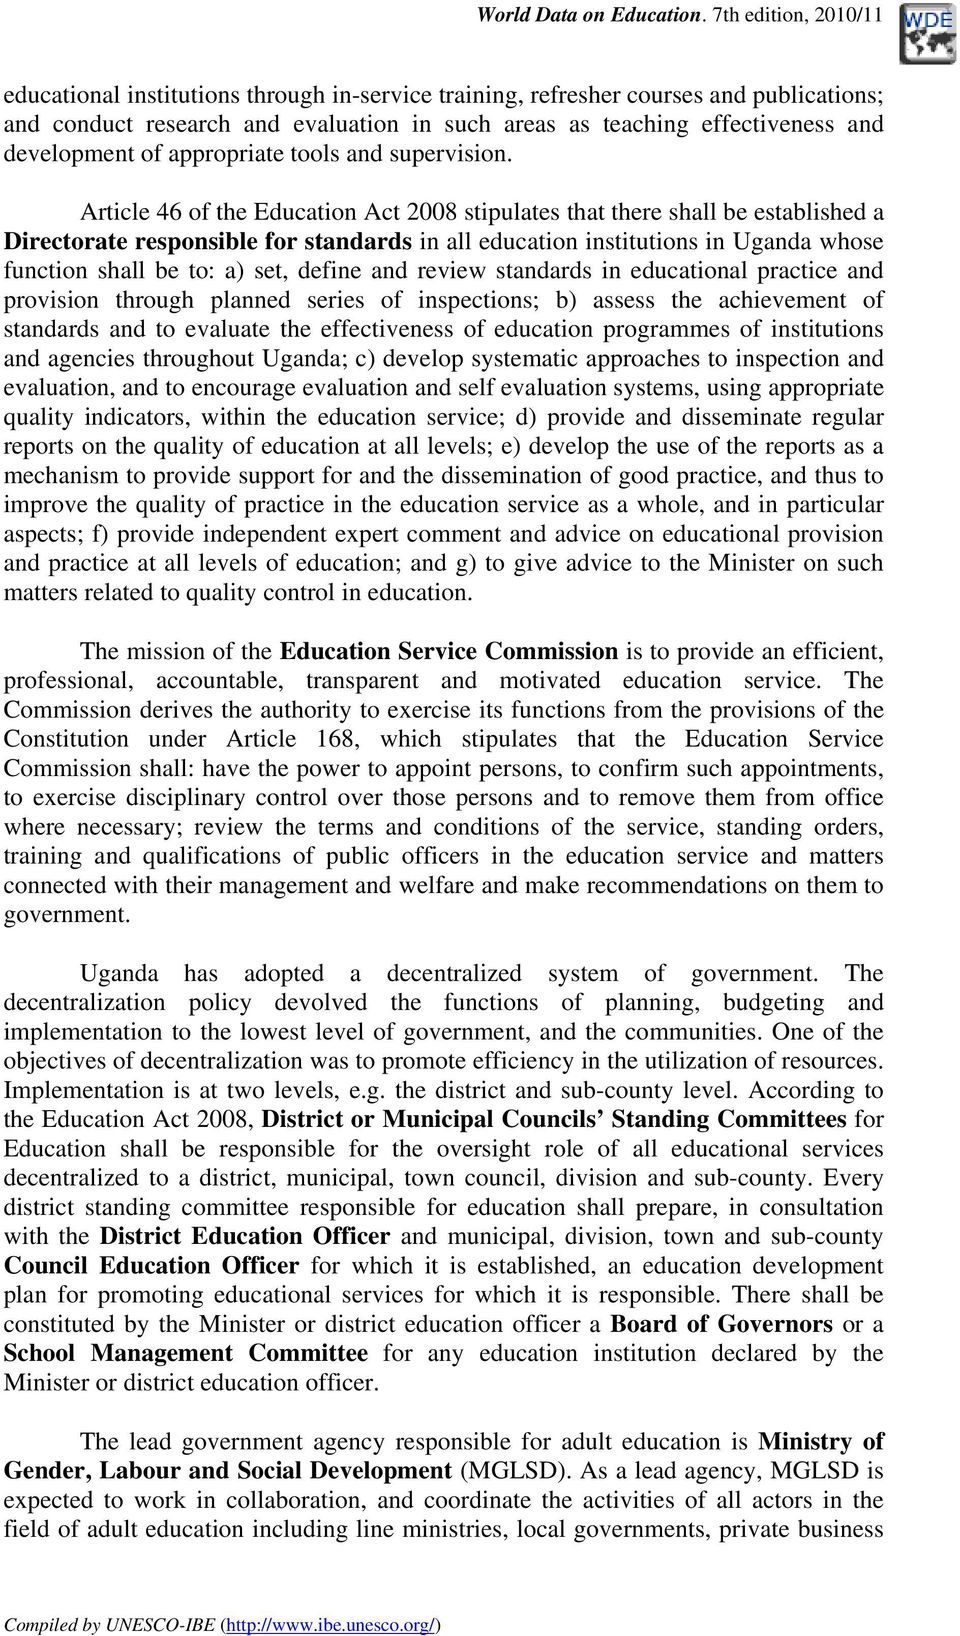 Article 46 of the Education Act 2008 stipulates that there shall be established a Directorate responsible for standards in all education institutions in Uganda whose function shall be to: a) set,